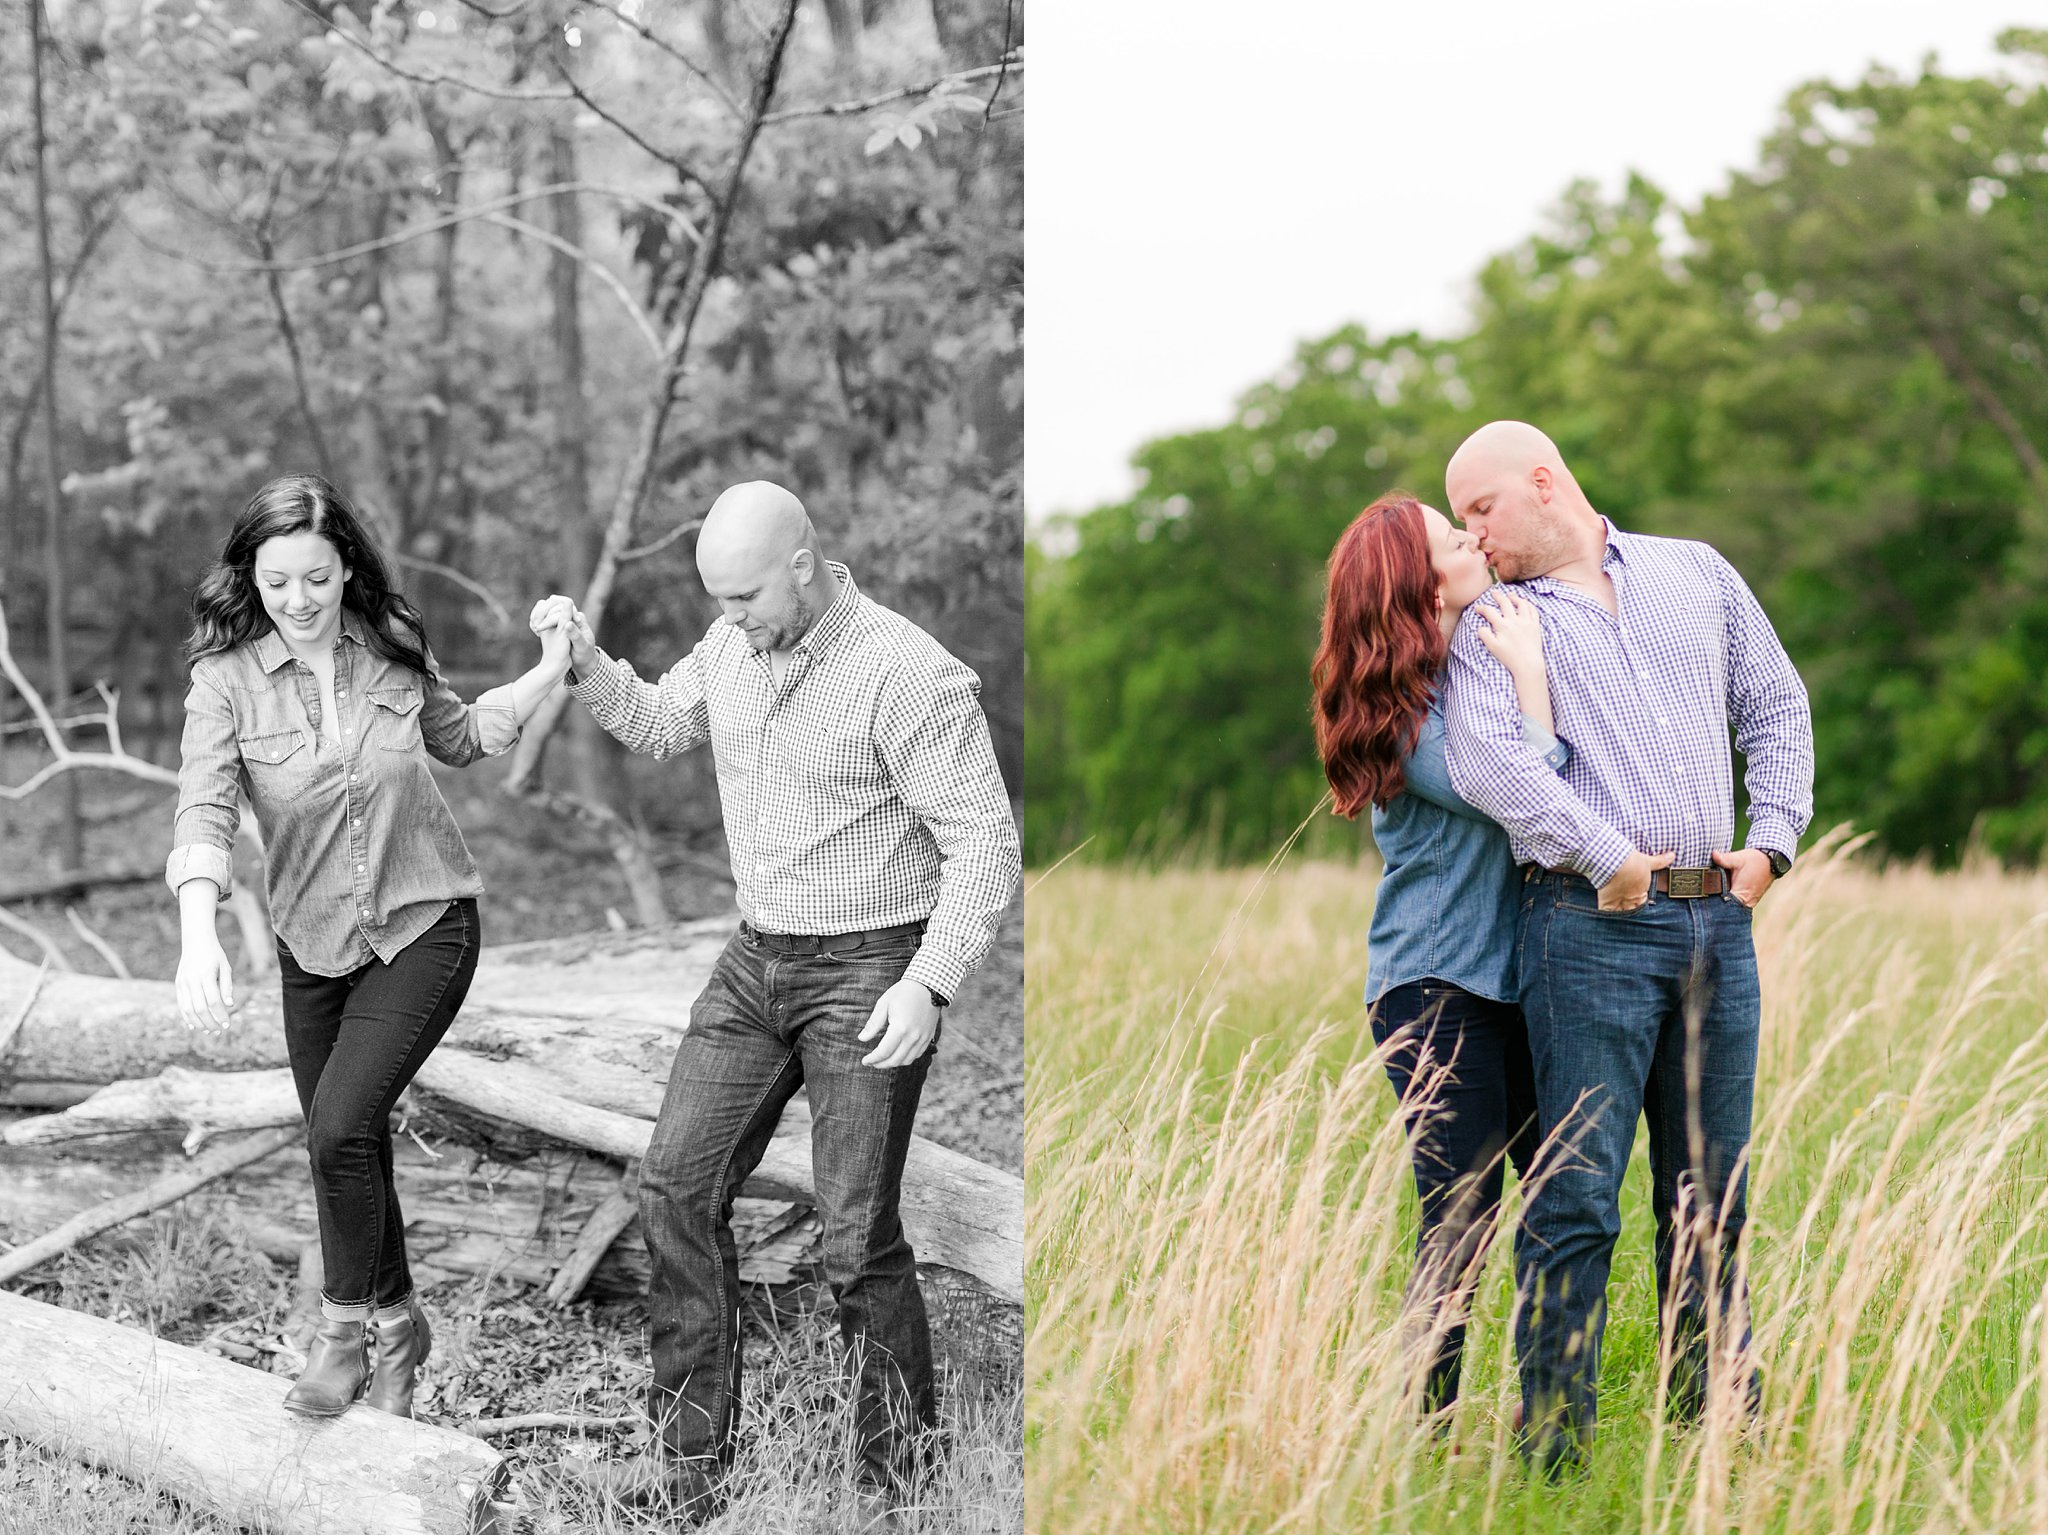 Old Town Manassas Battlefield Engagement Photos Virginia Wedding Photographer Jessica & Jason-158.jpg